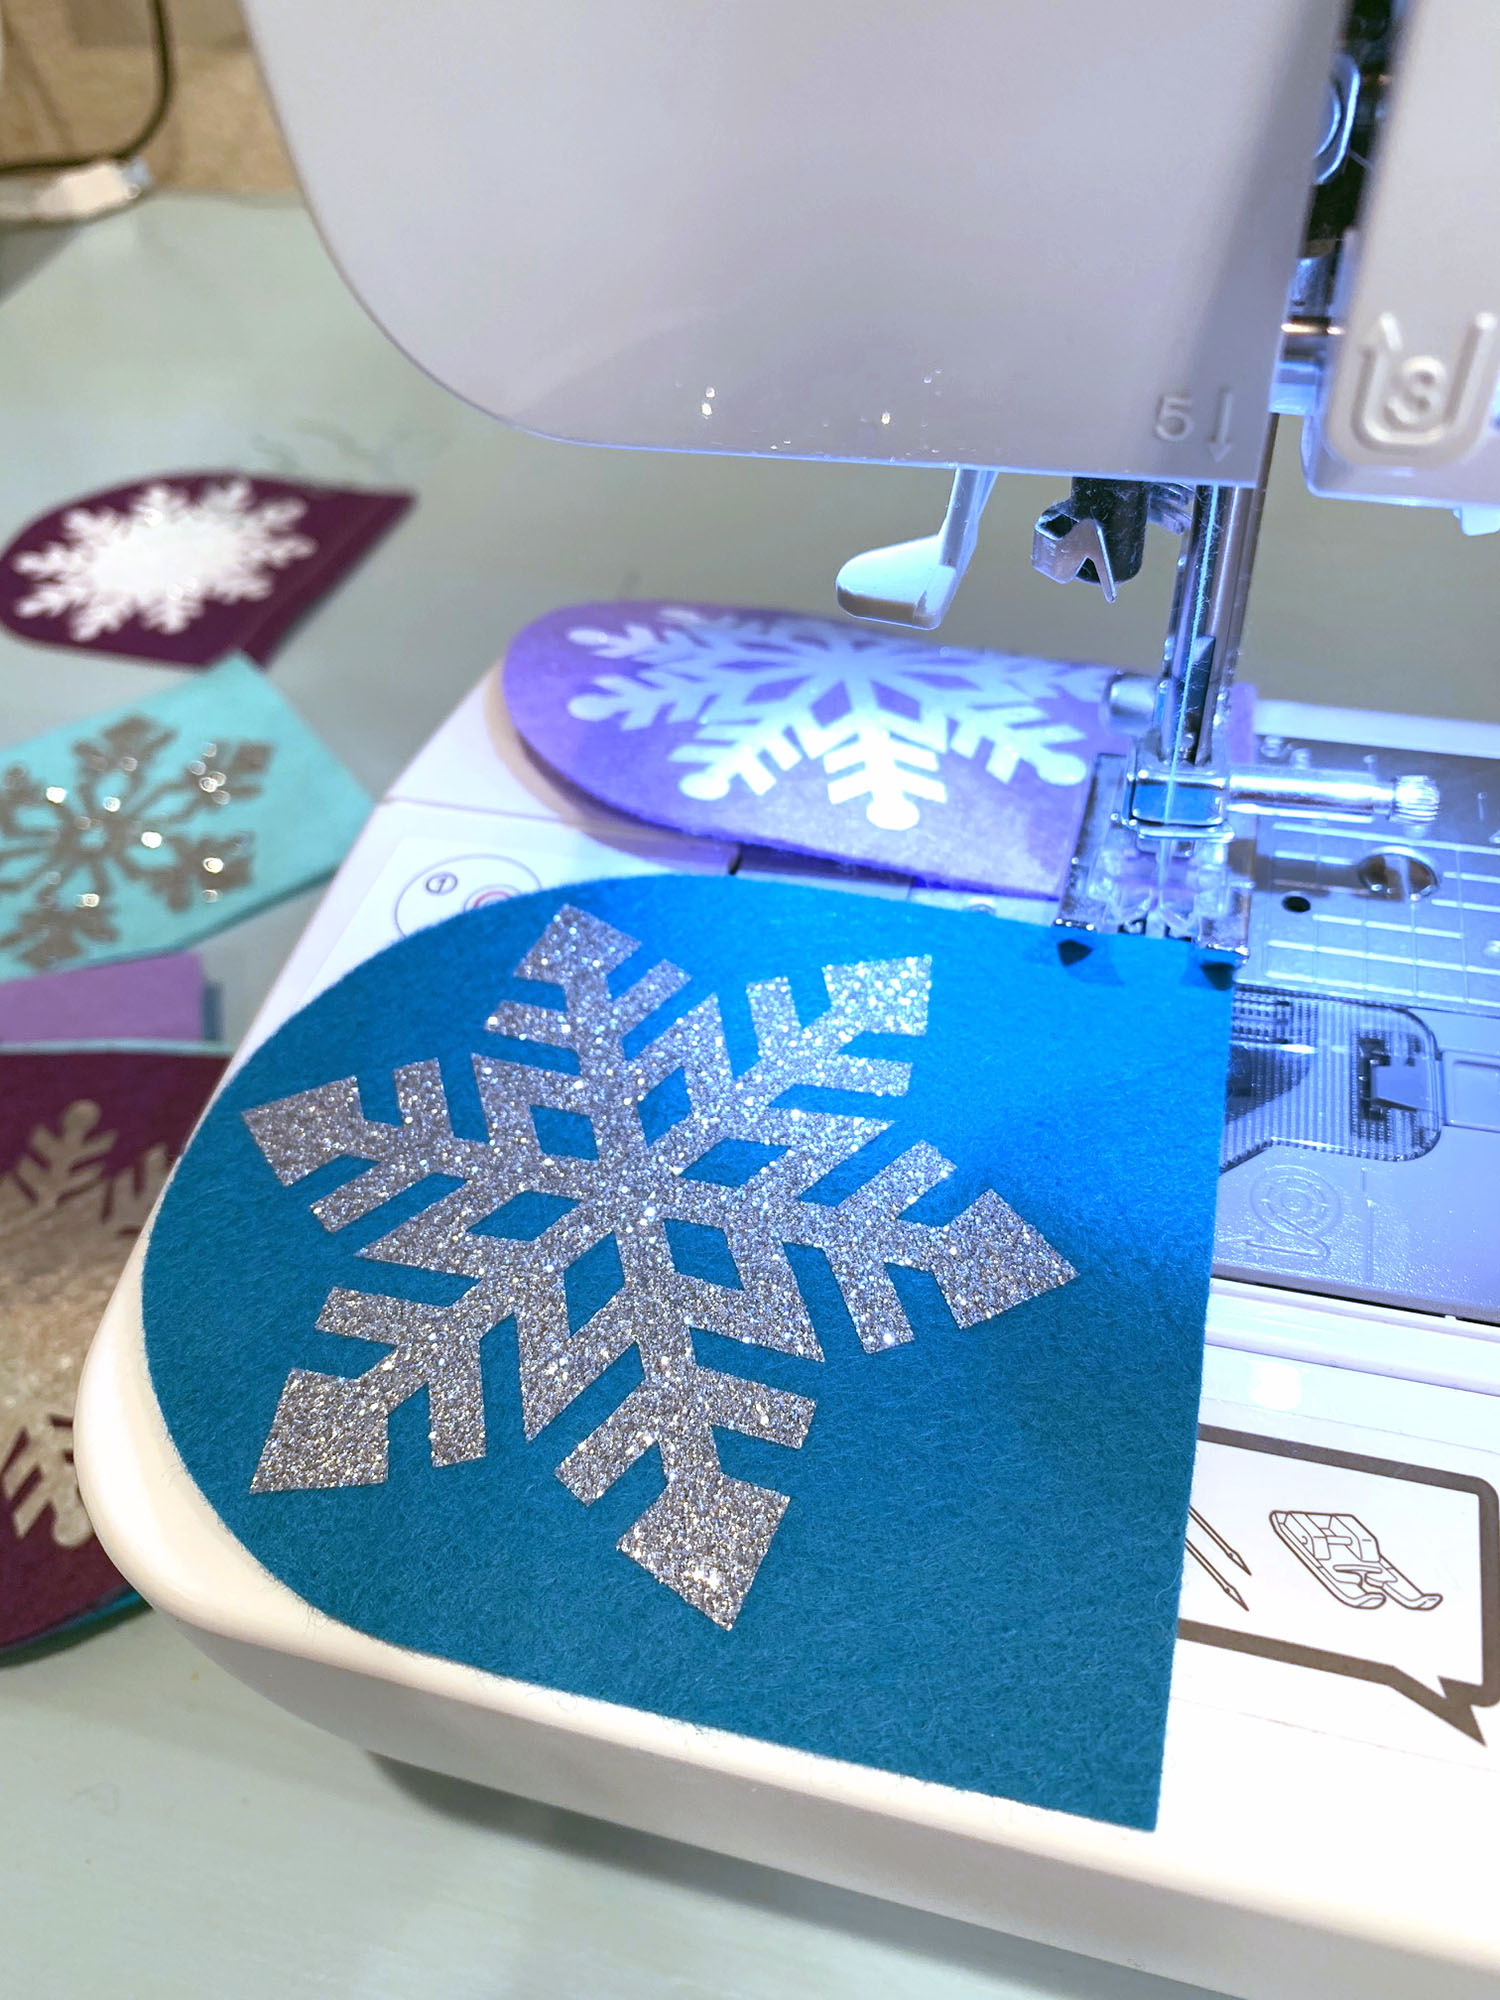 Chrismukkah Holiday Crafts With Cricut Maker Happiness